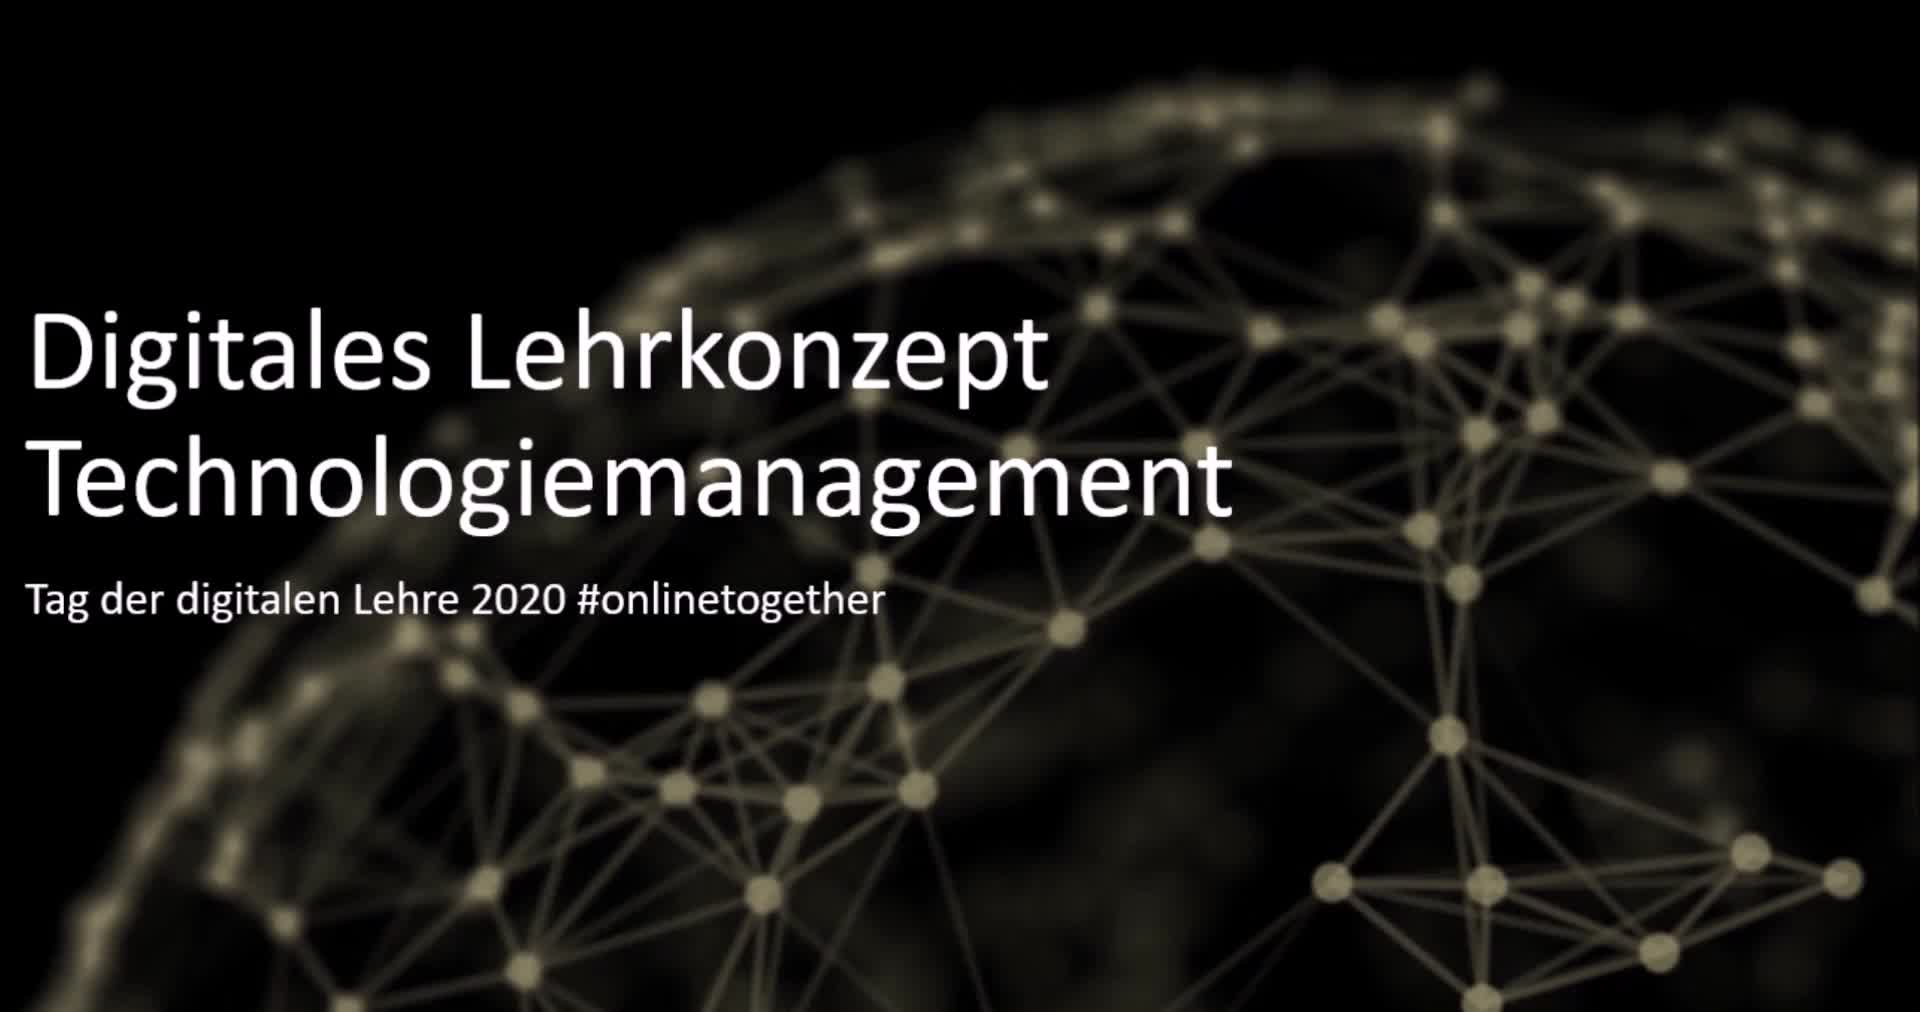 Digitales Lehrkonzept Technologiemanagement